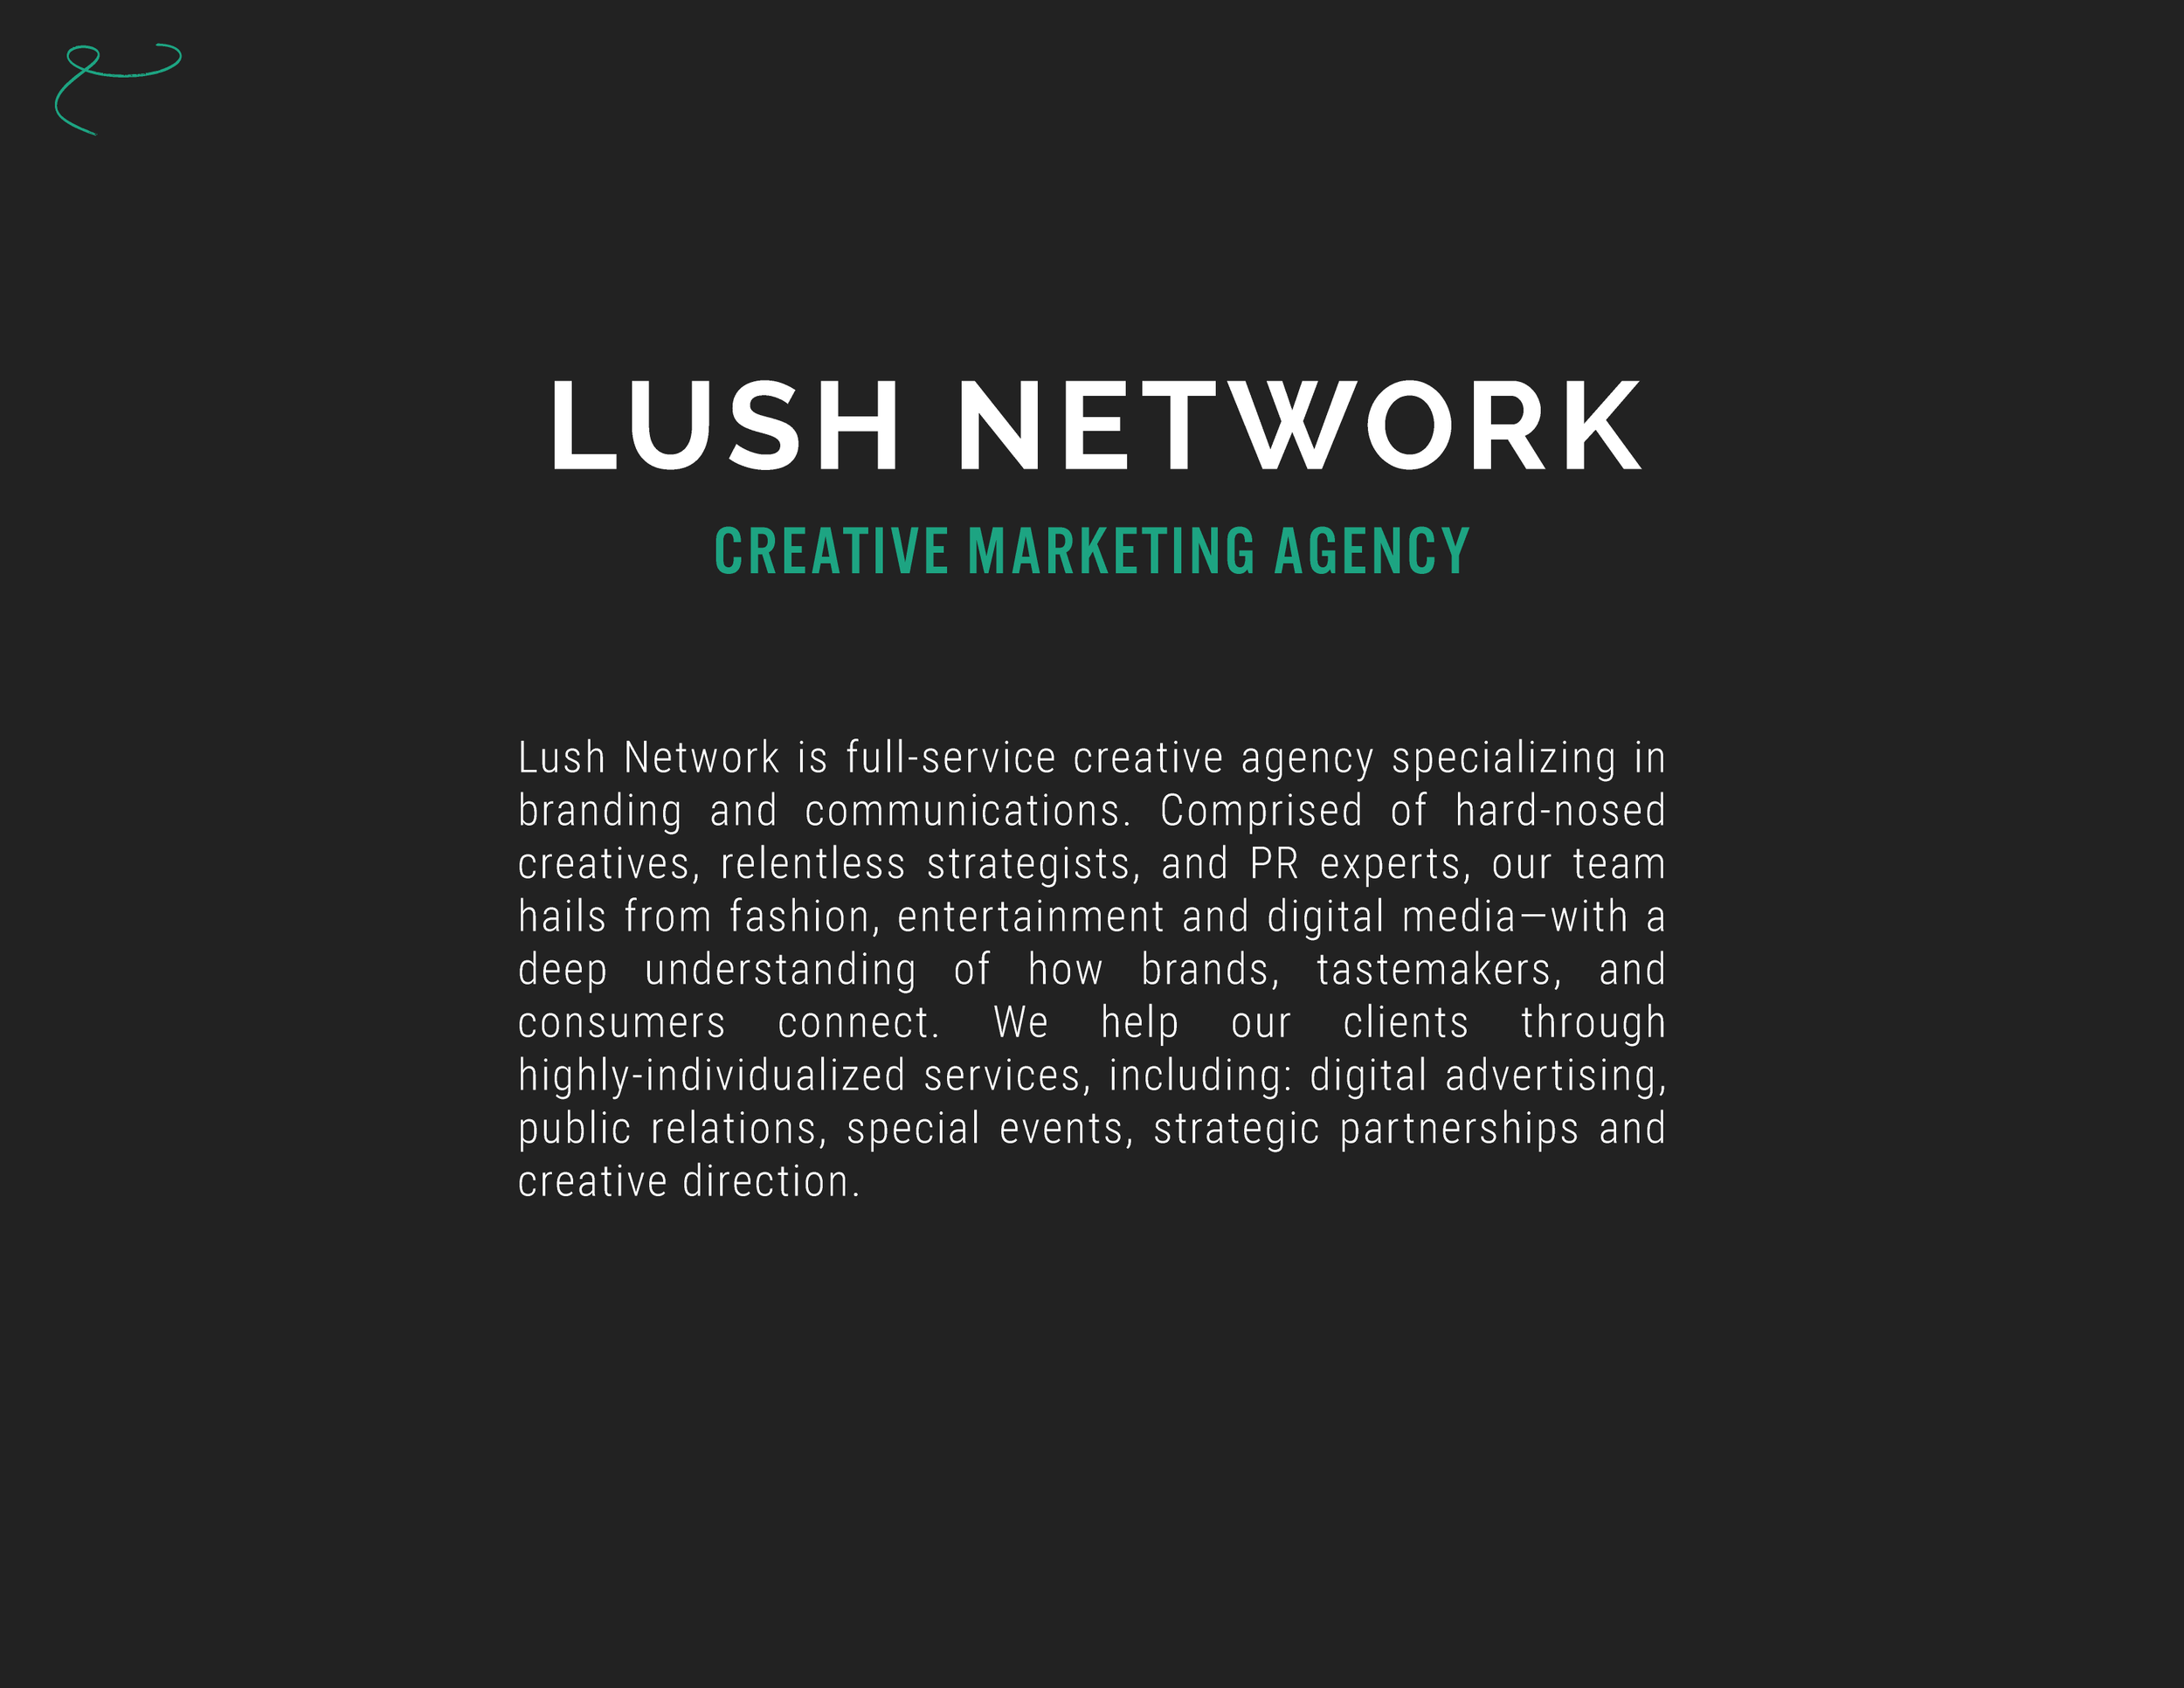 LUSH_2-INTRO.png